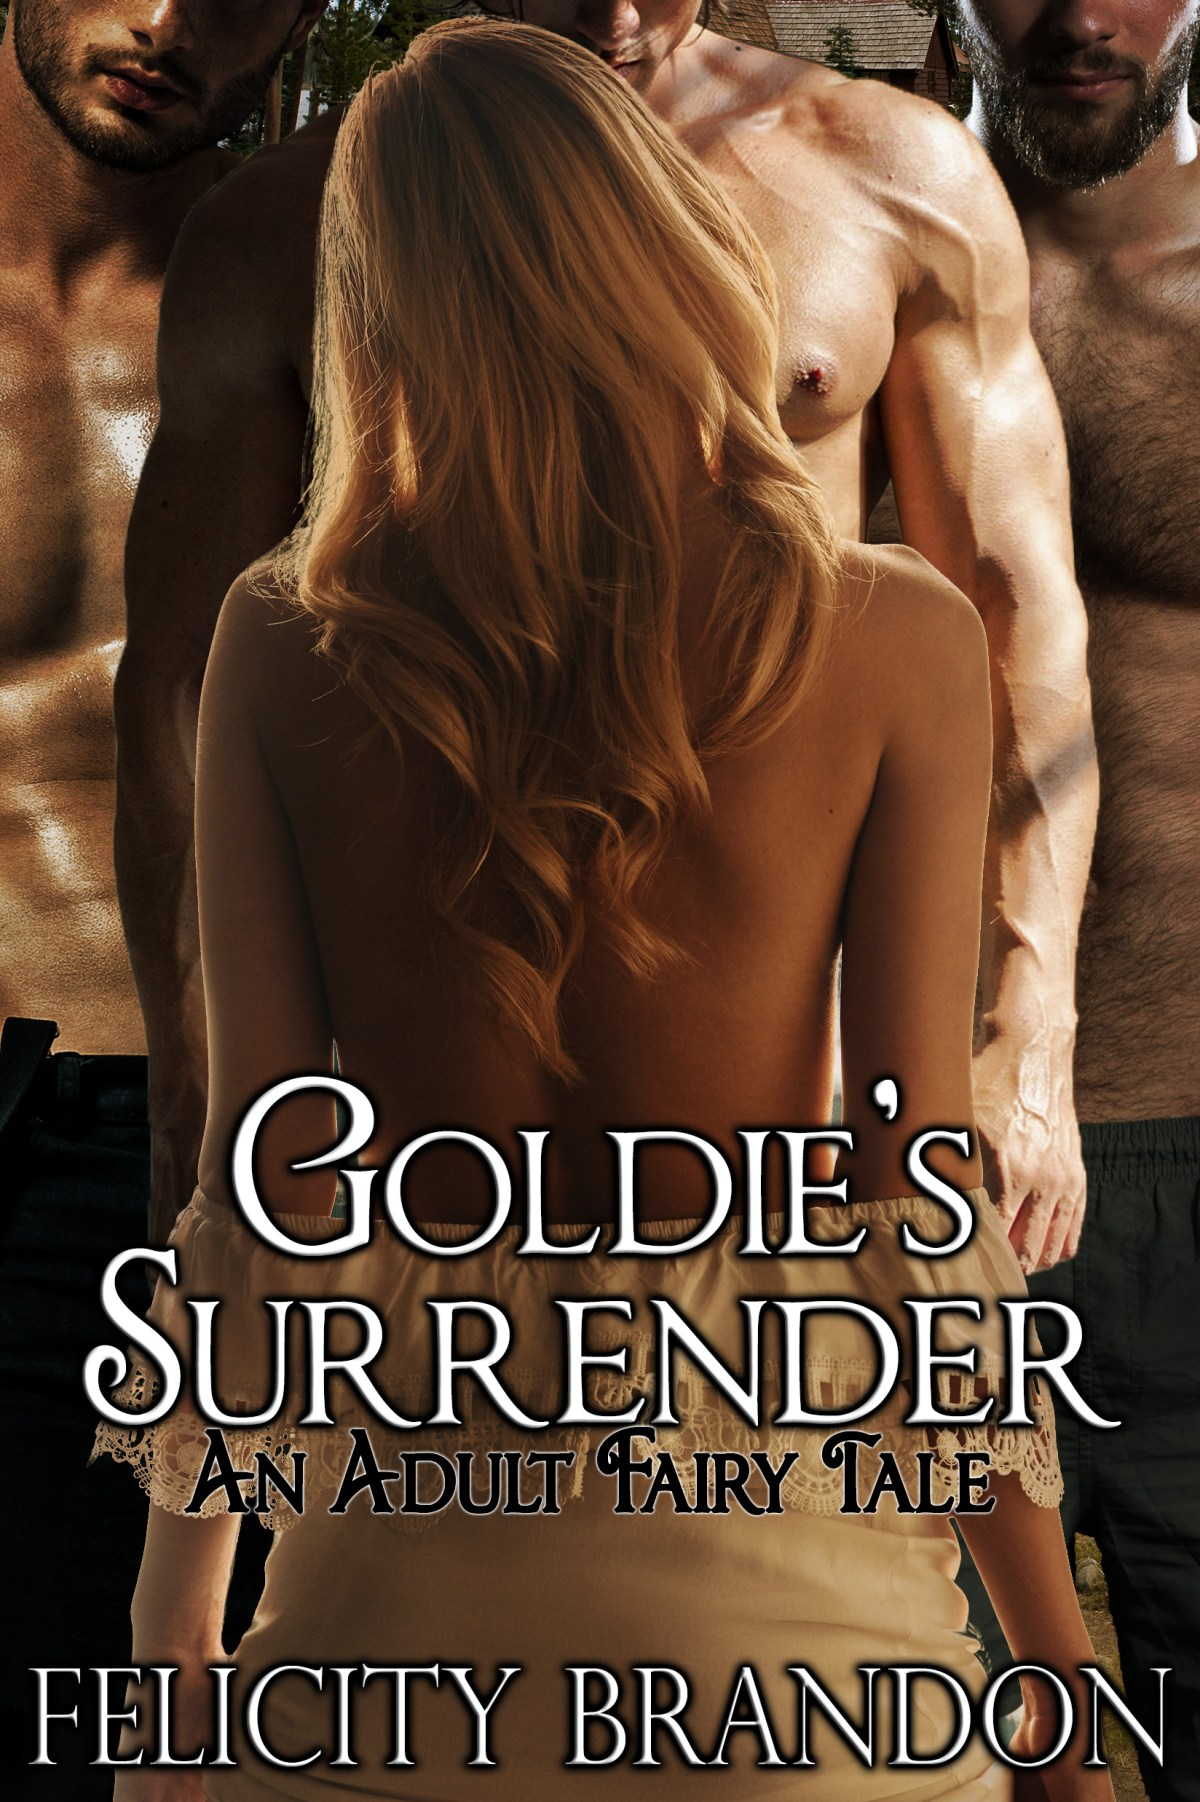 Goldie's Surrender is on sale for 99 cents!